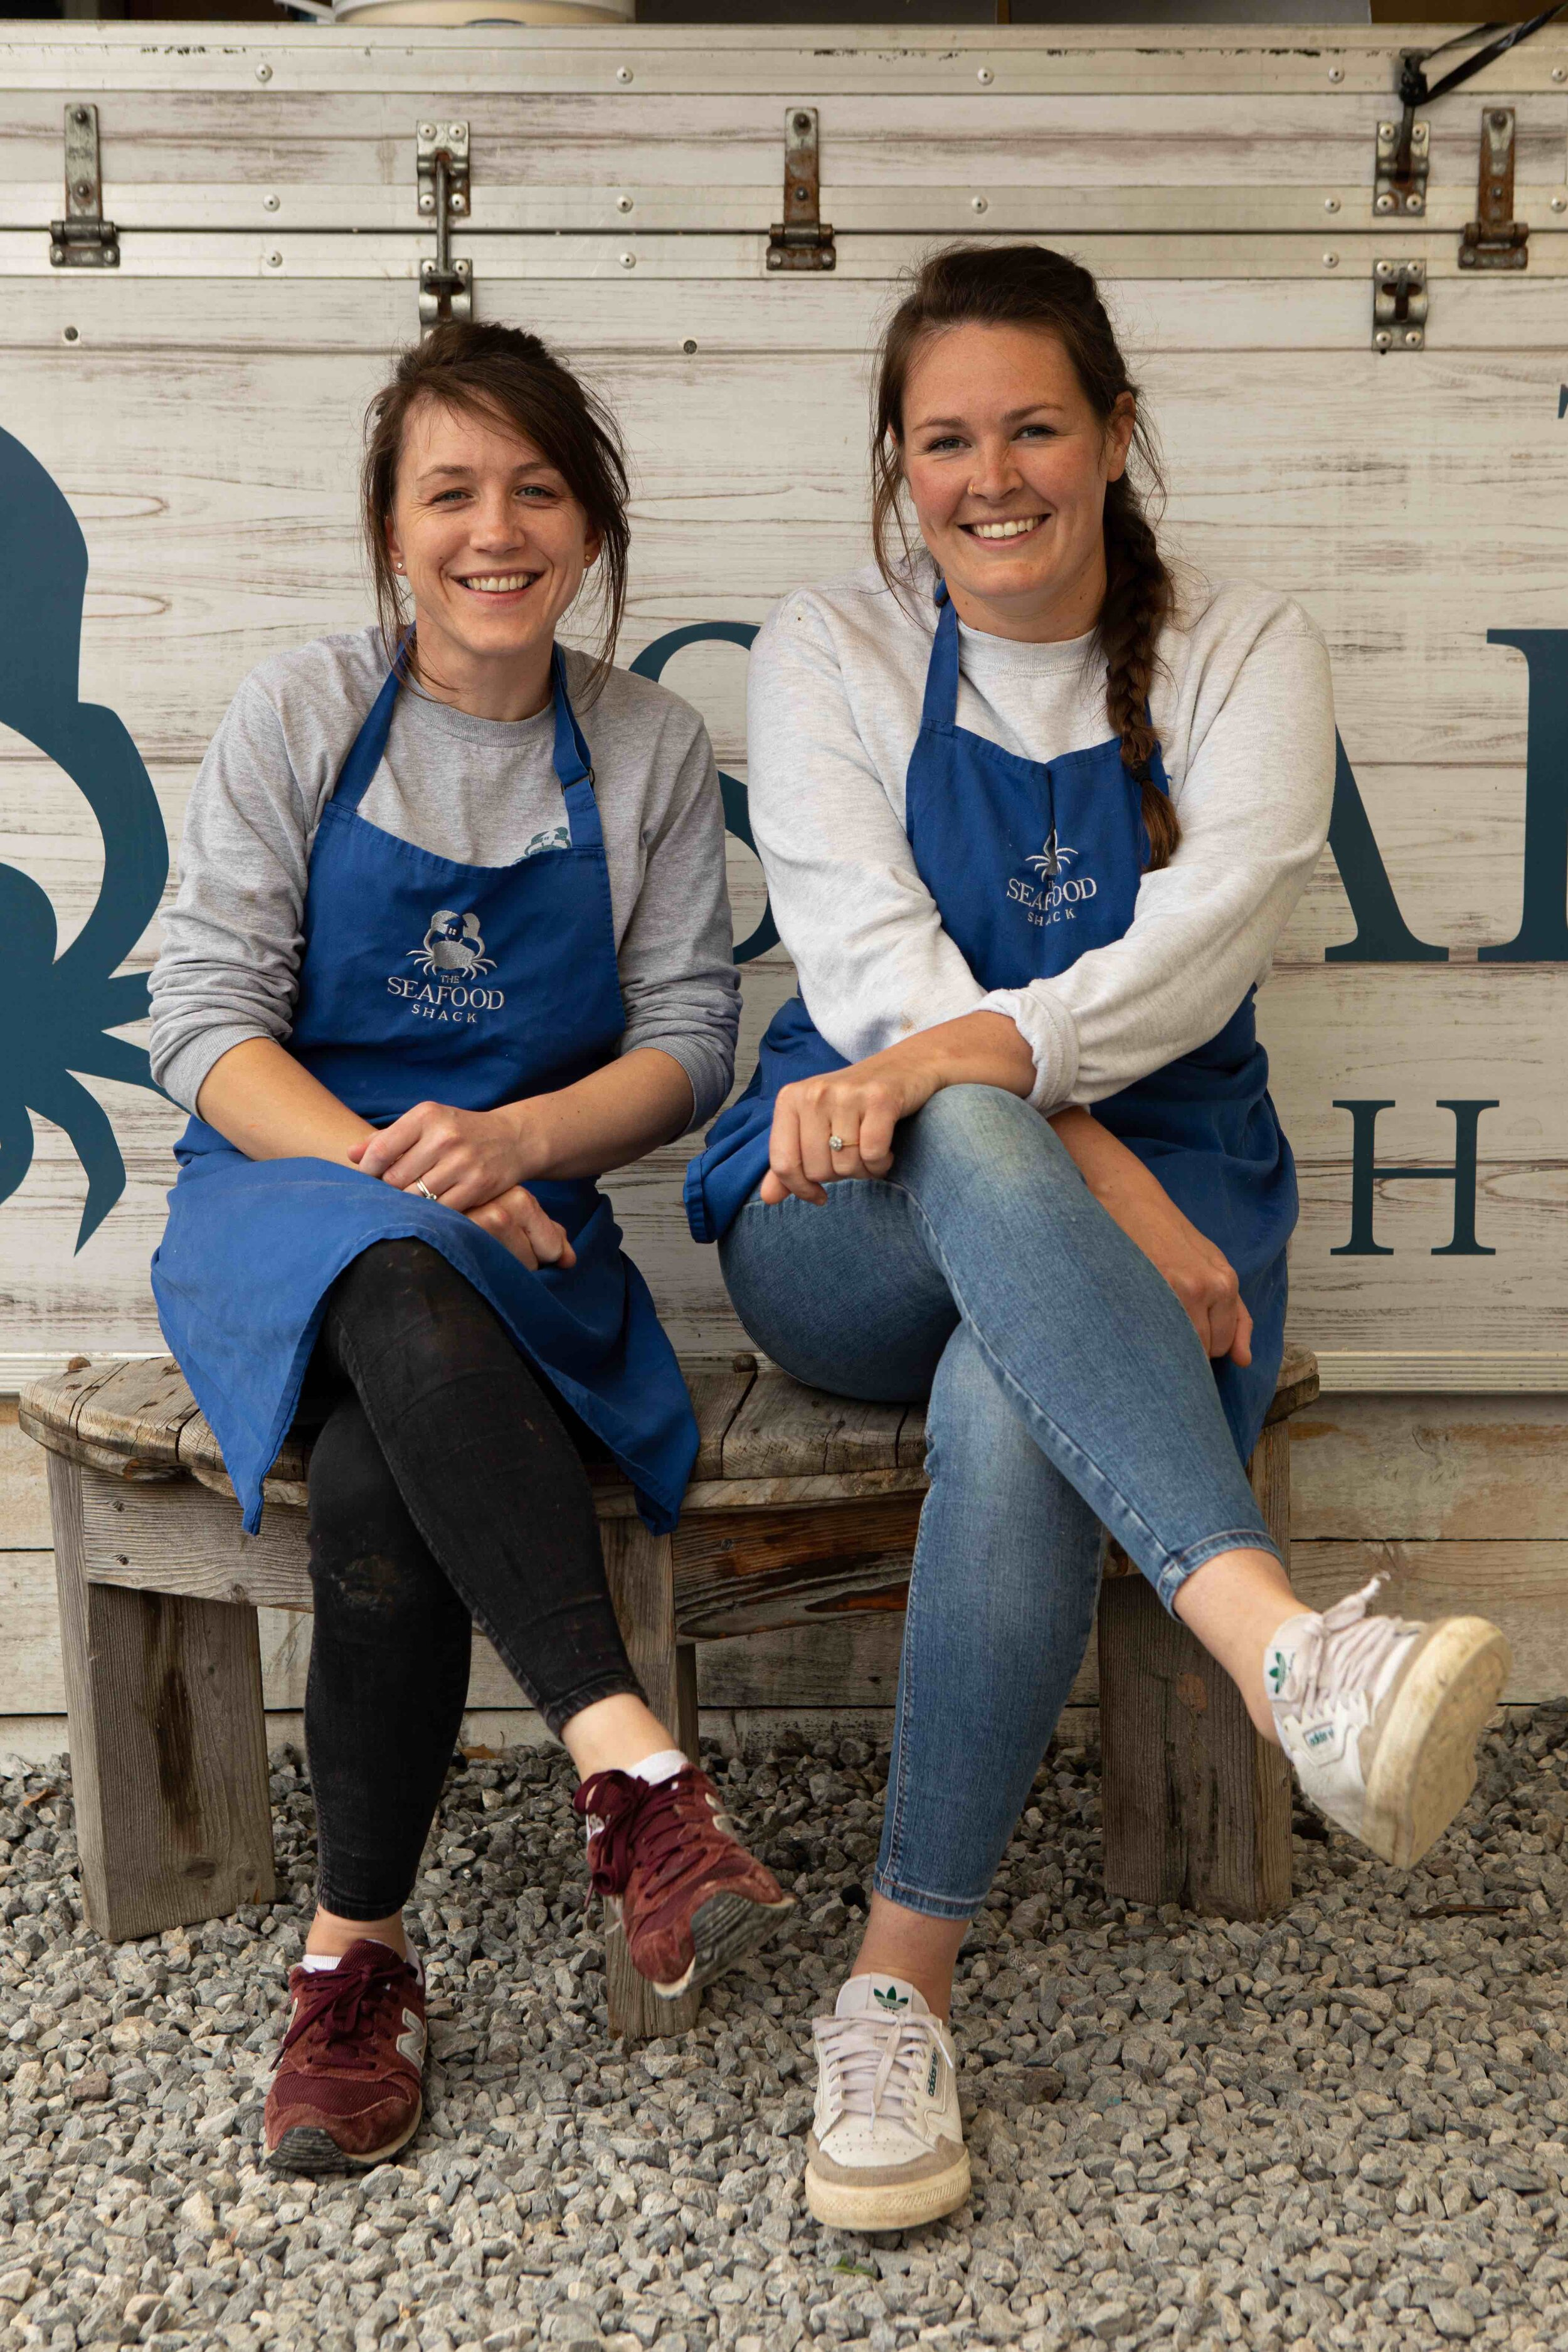 Seafood Shack co-owners and authors Fenella and Kirsty. Photograph: Clair Irwin